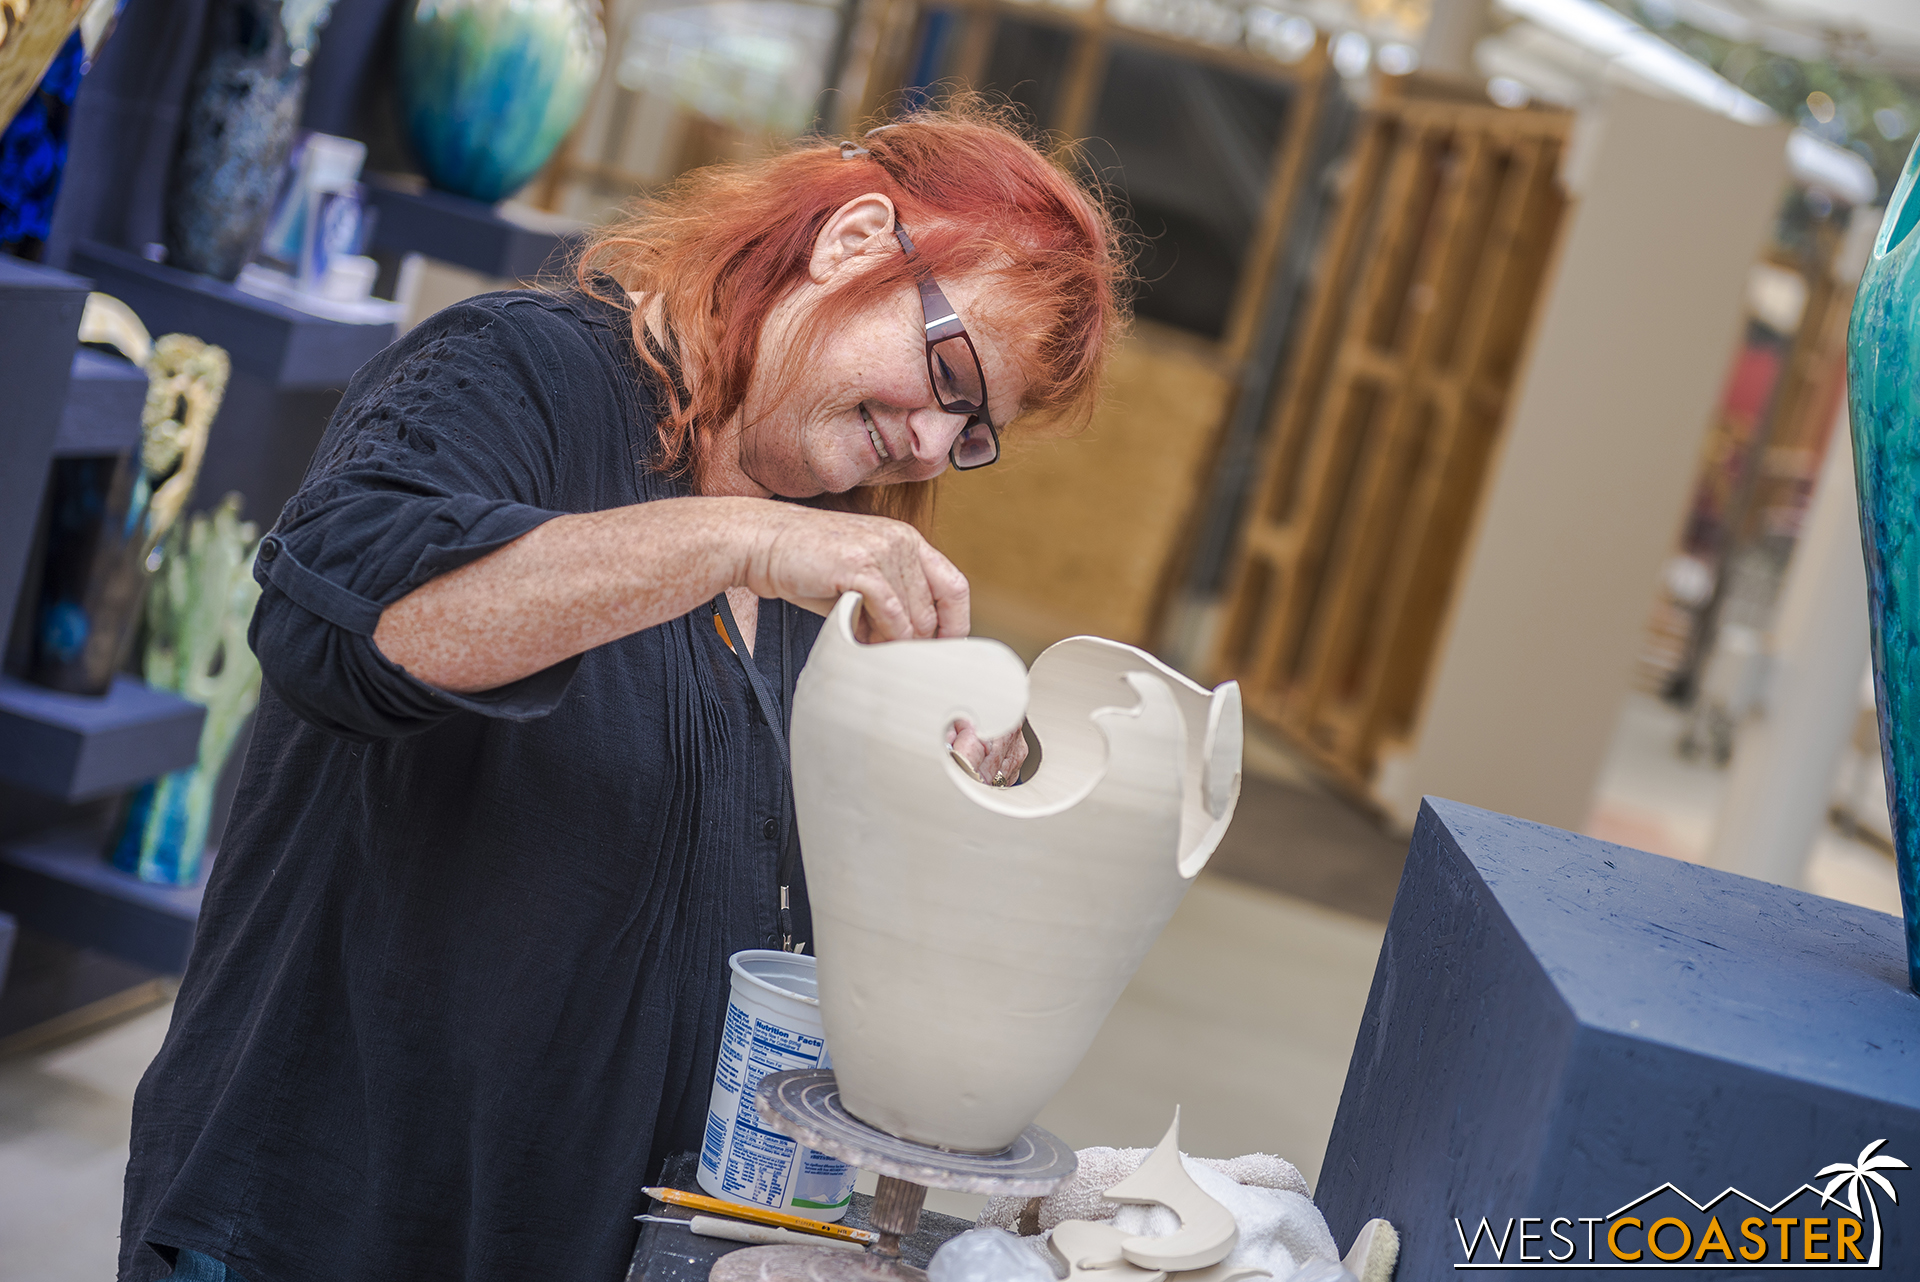 Sharon working on a vase.